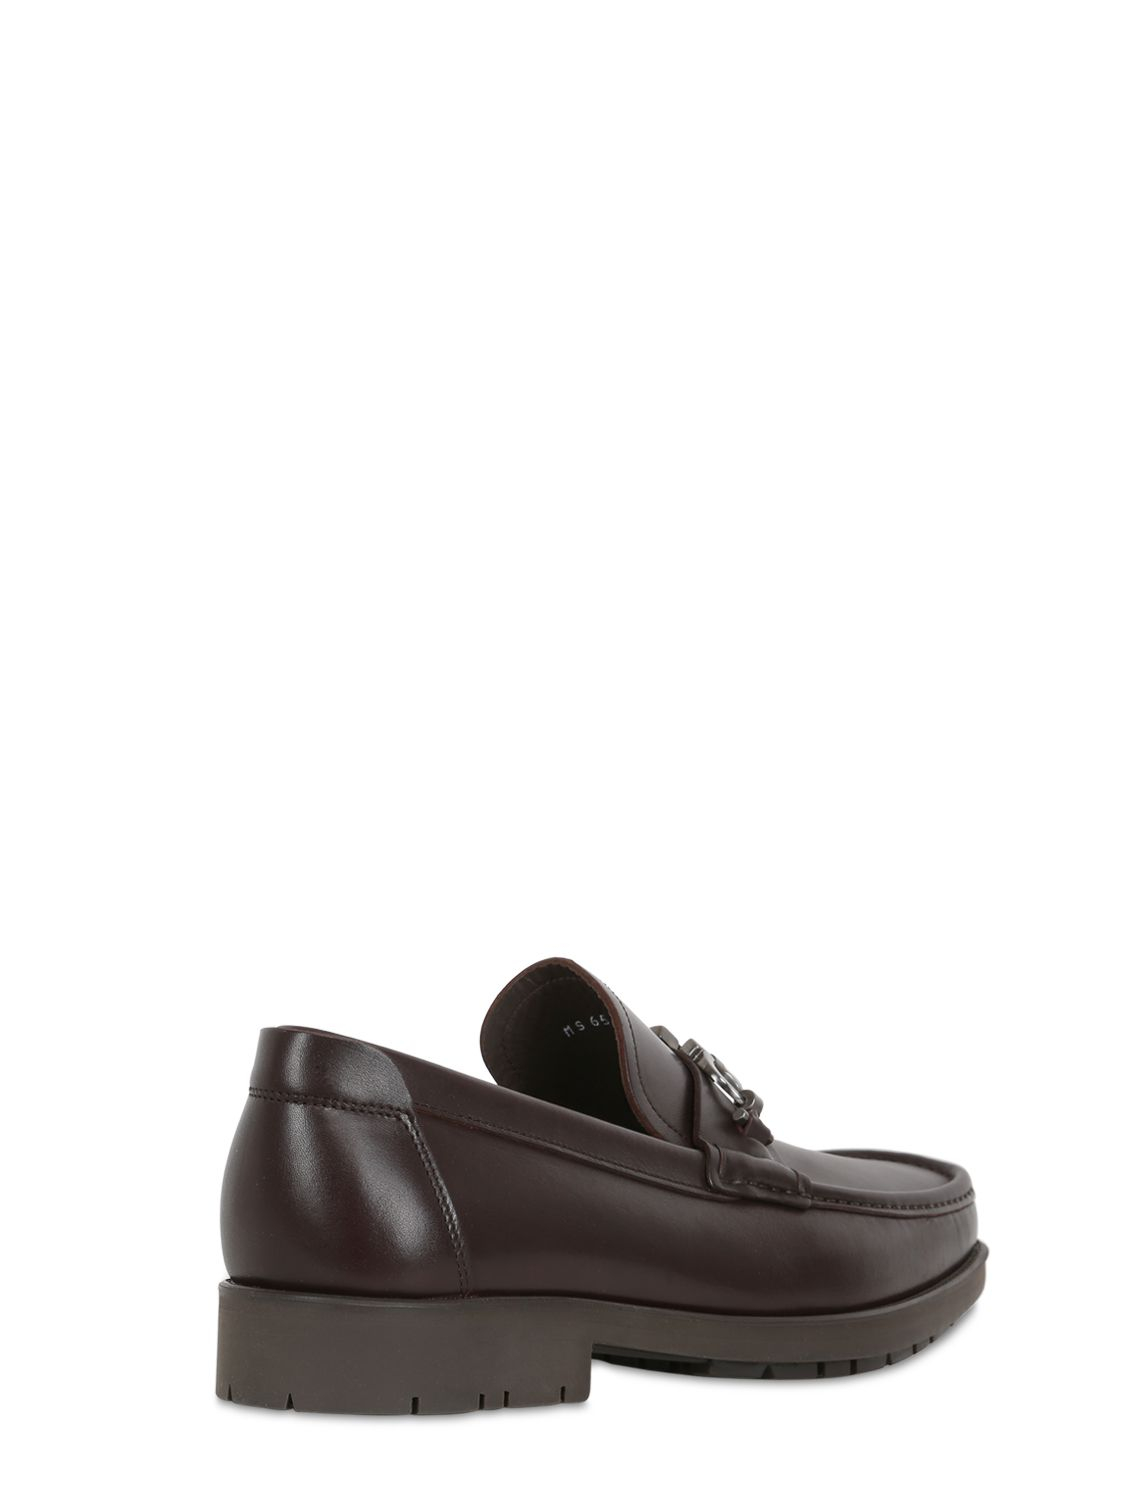 Ferragamo Master Leather Loafers in Brown for Men